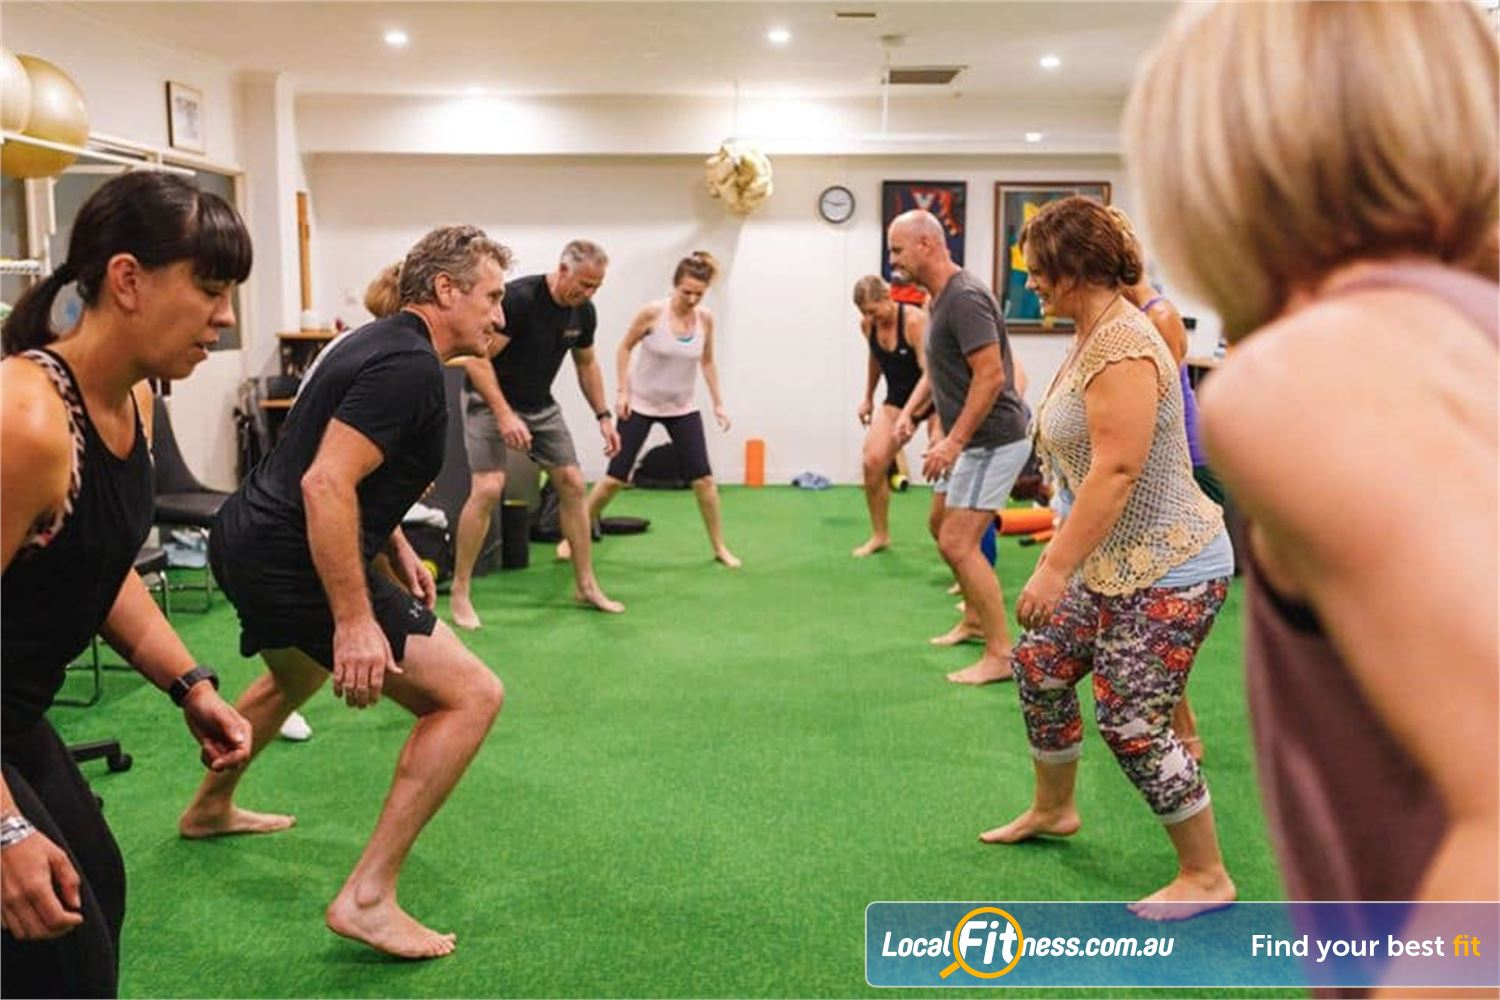 Long Live You Near Windsor Our Prahran group fitness classes focus on optimal movement.